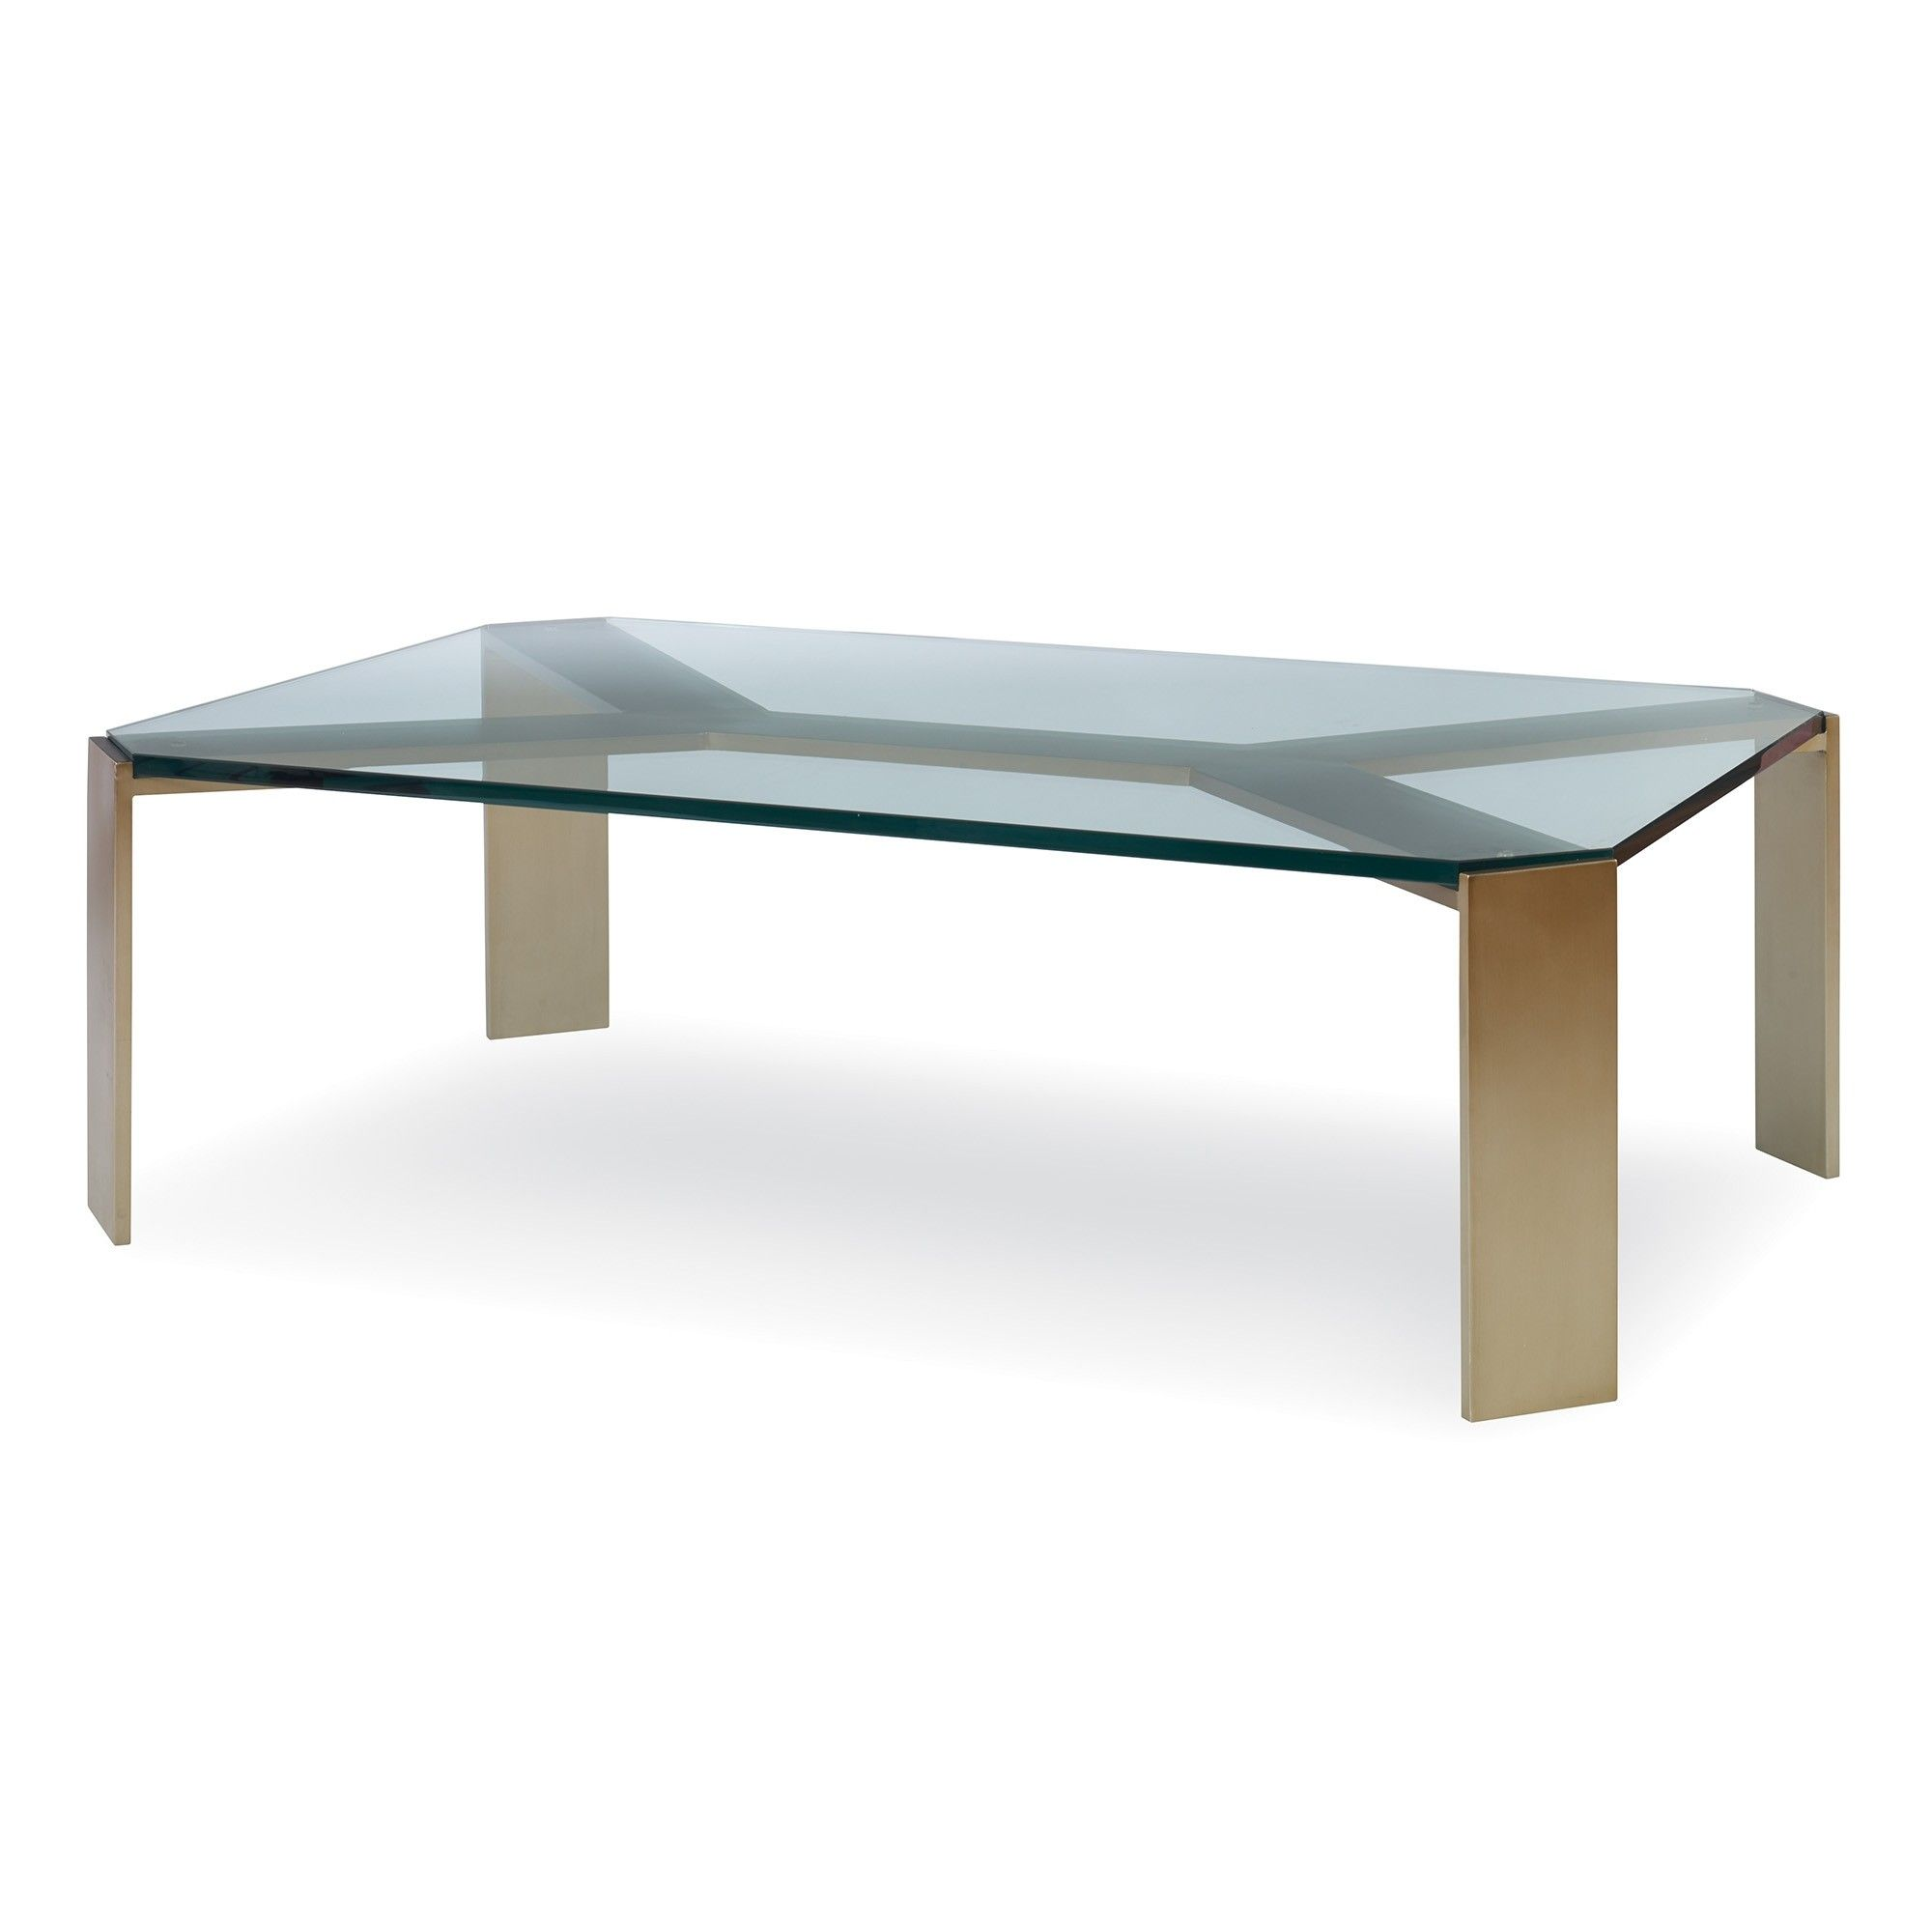 Fairfax Cocktail Table Otb852 54 With Satin Brass Finish And 3 4 Cocktail Tables Table Furniture [ 2000 x 2000 Pixel ]